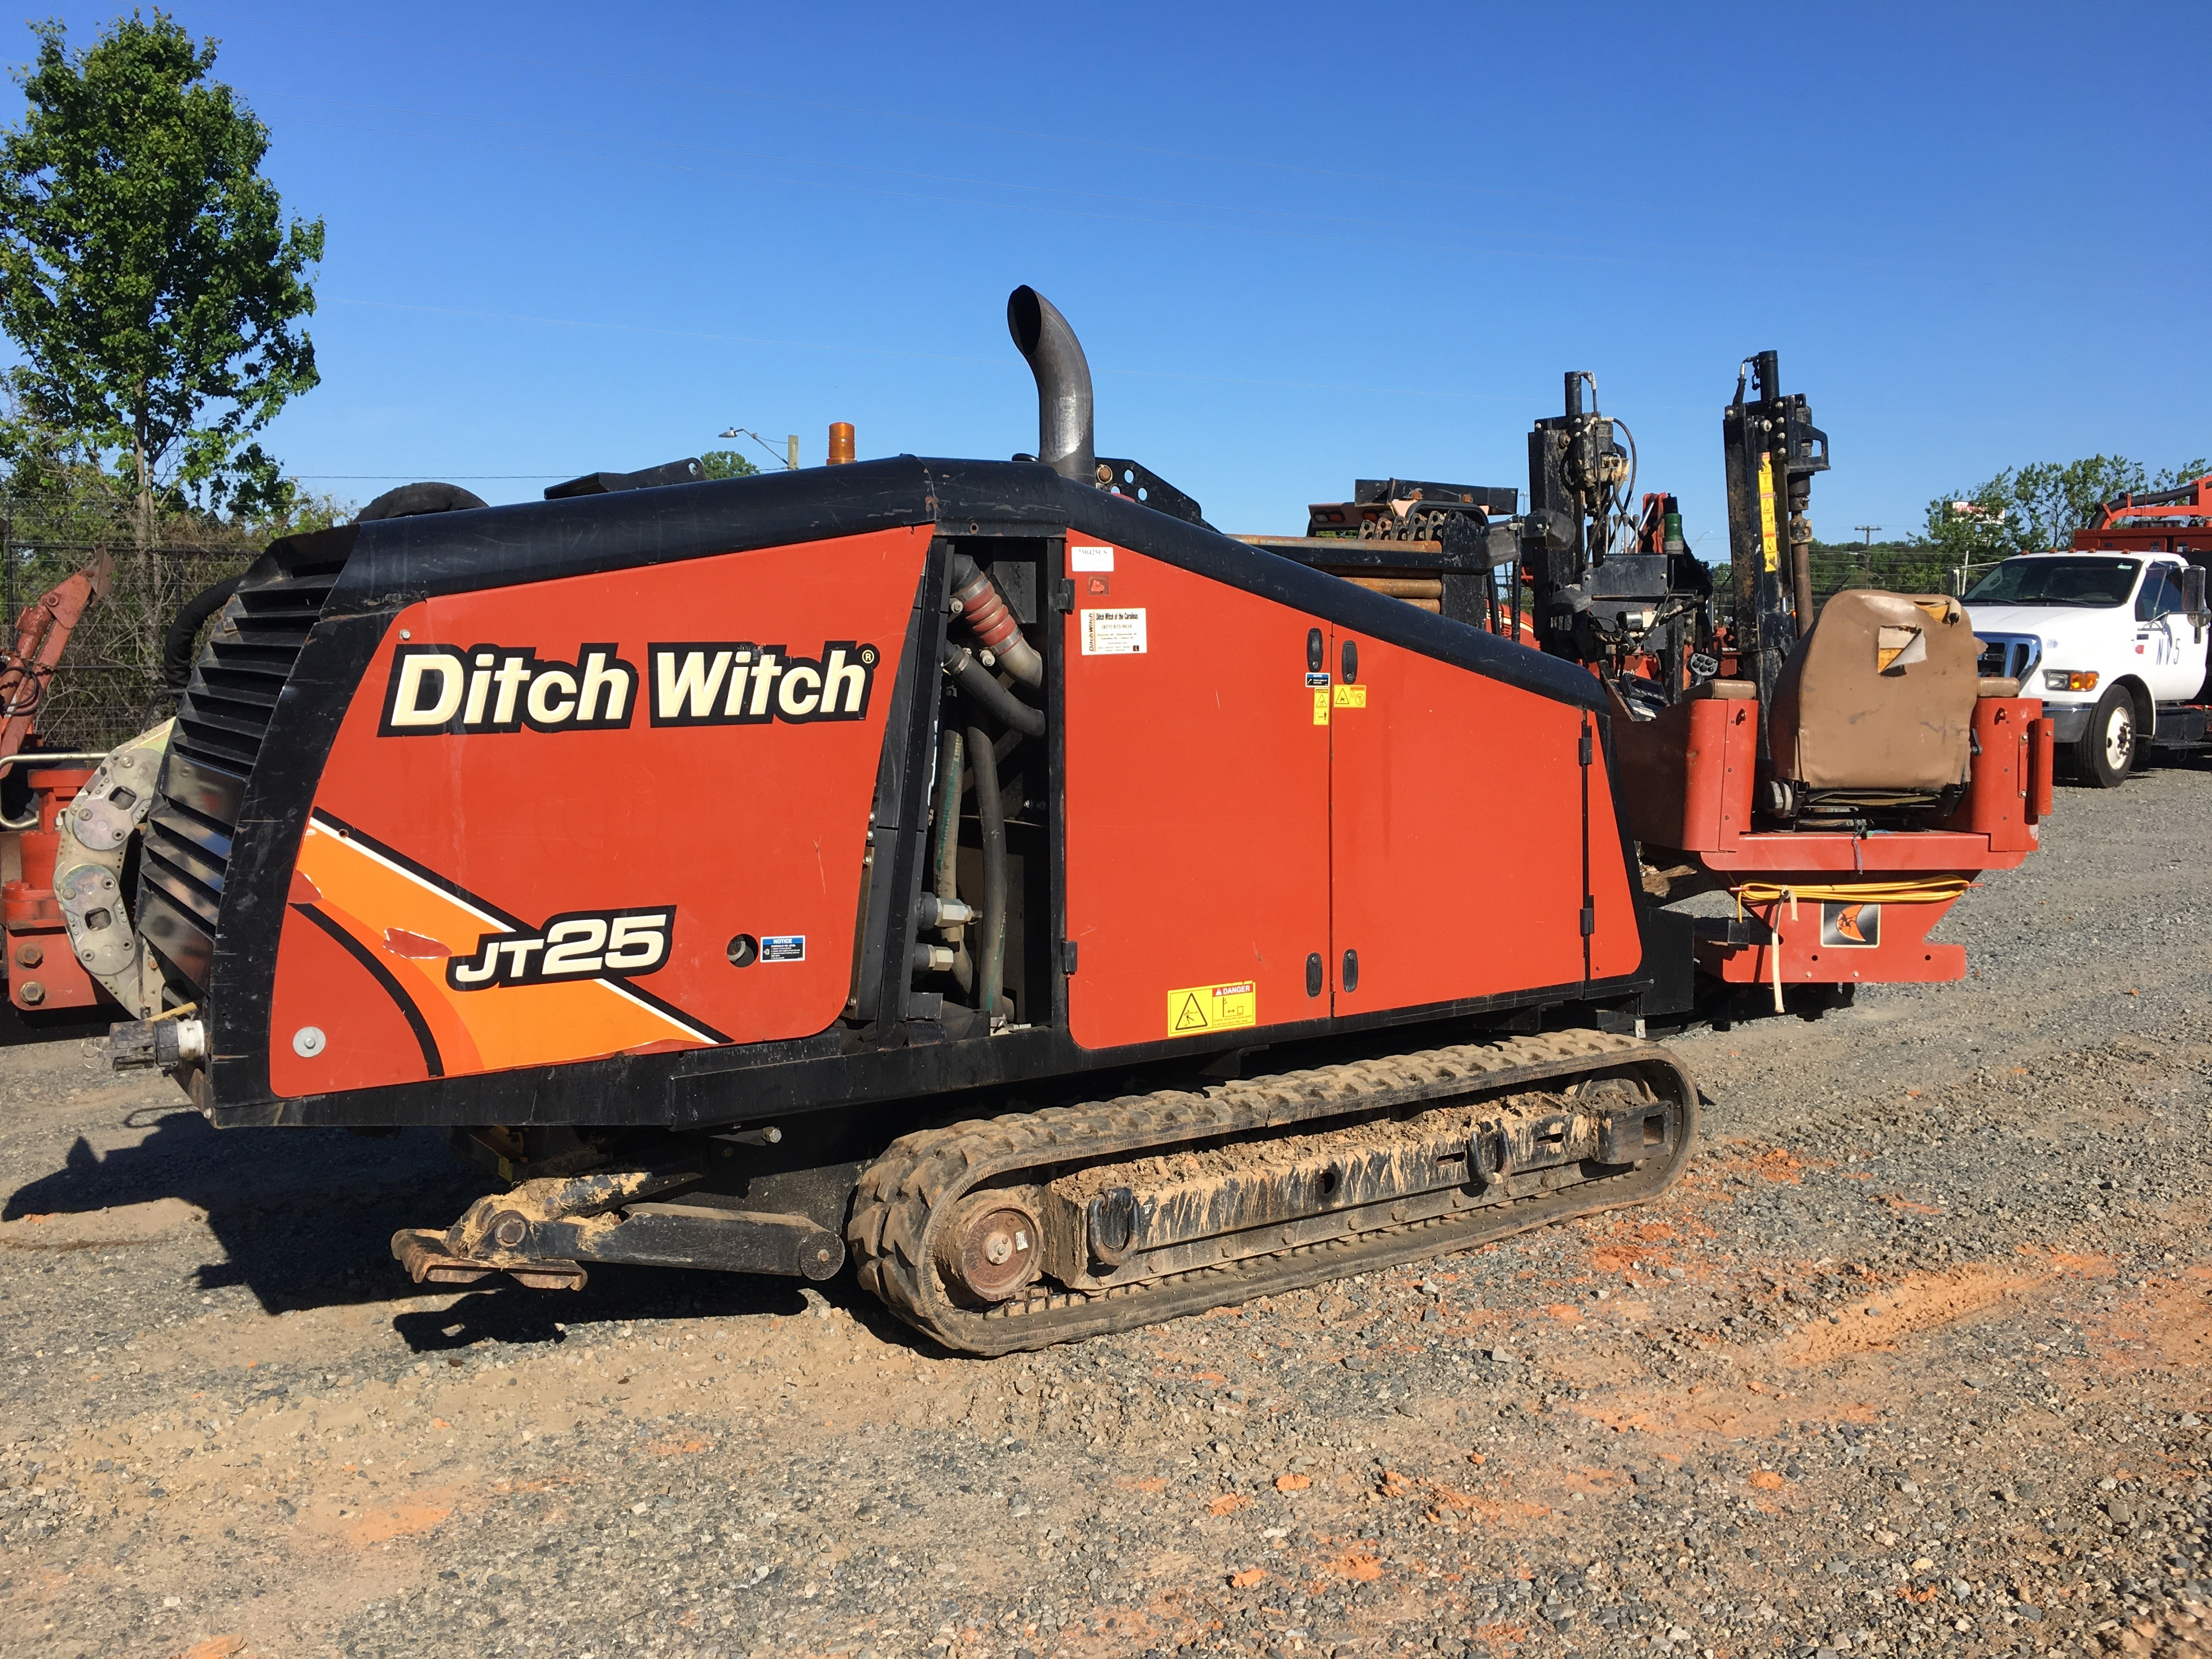 Used, 2015, Ditch Witch, Ditch Witch JT25 (Tier 4 Final), Boring / Drilling Machines